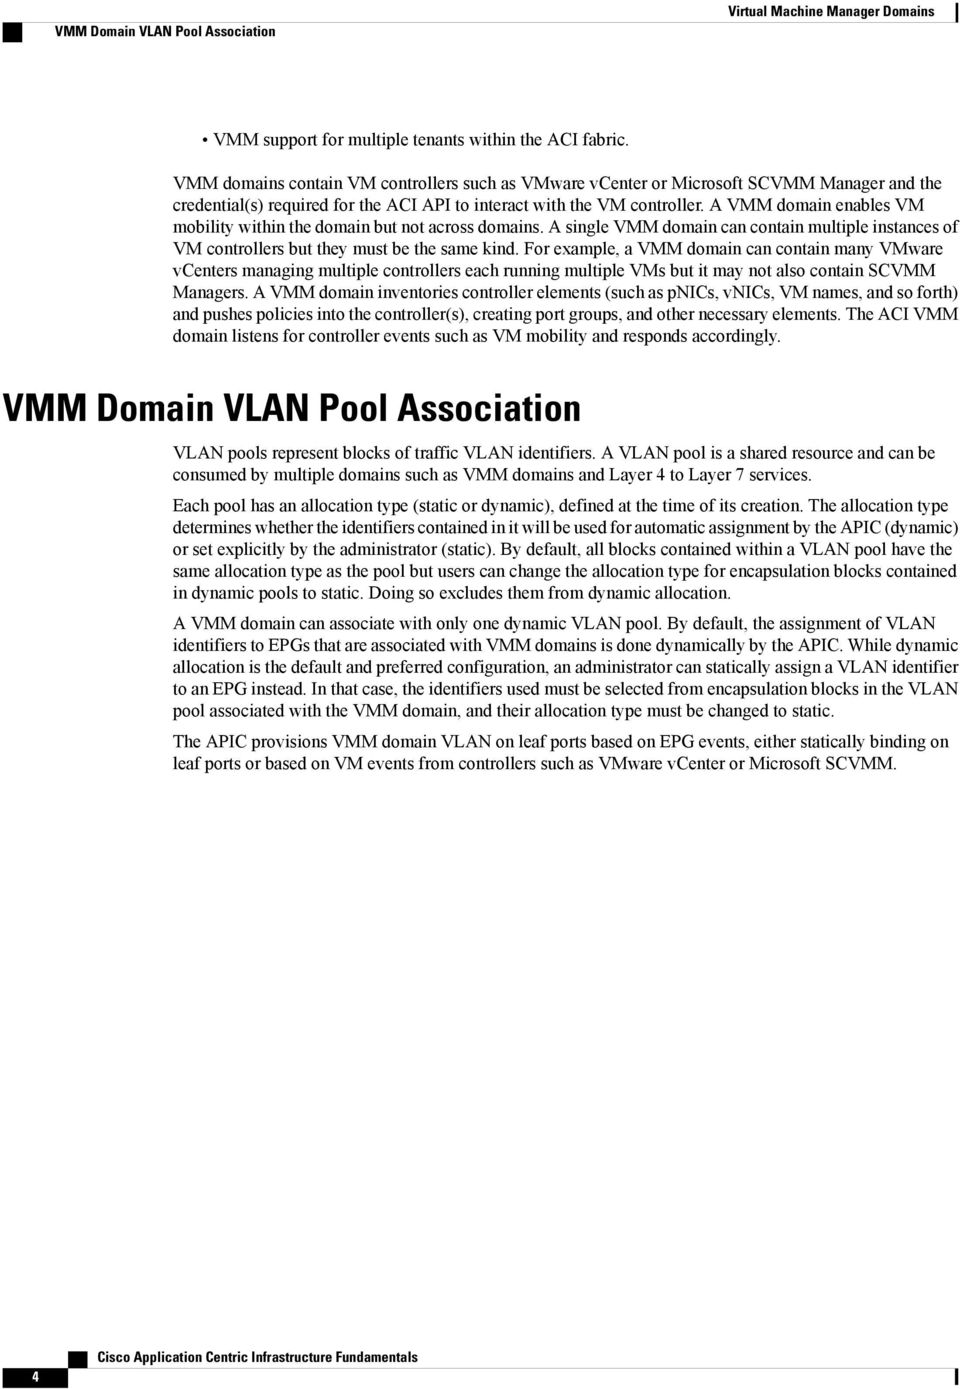 A VMM domain enables VM mobility within the domain but not across domains. A single VMM domain can contain multiple instances of VM controllers but they must be the same kind.